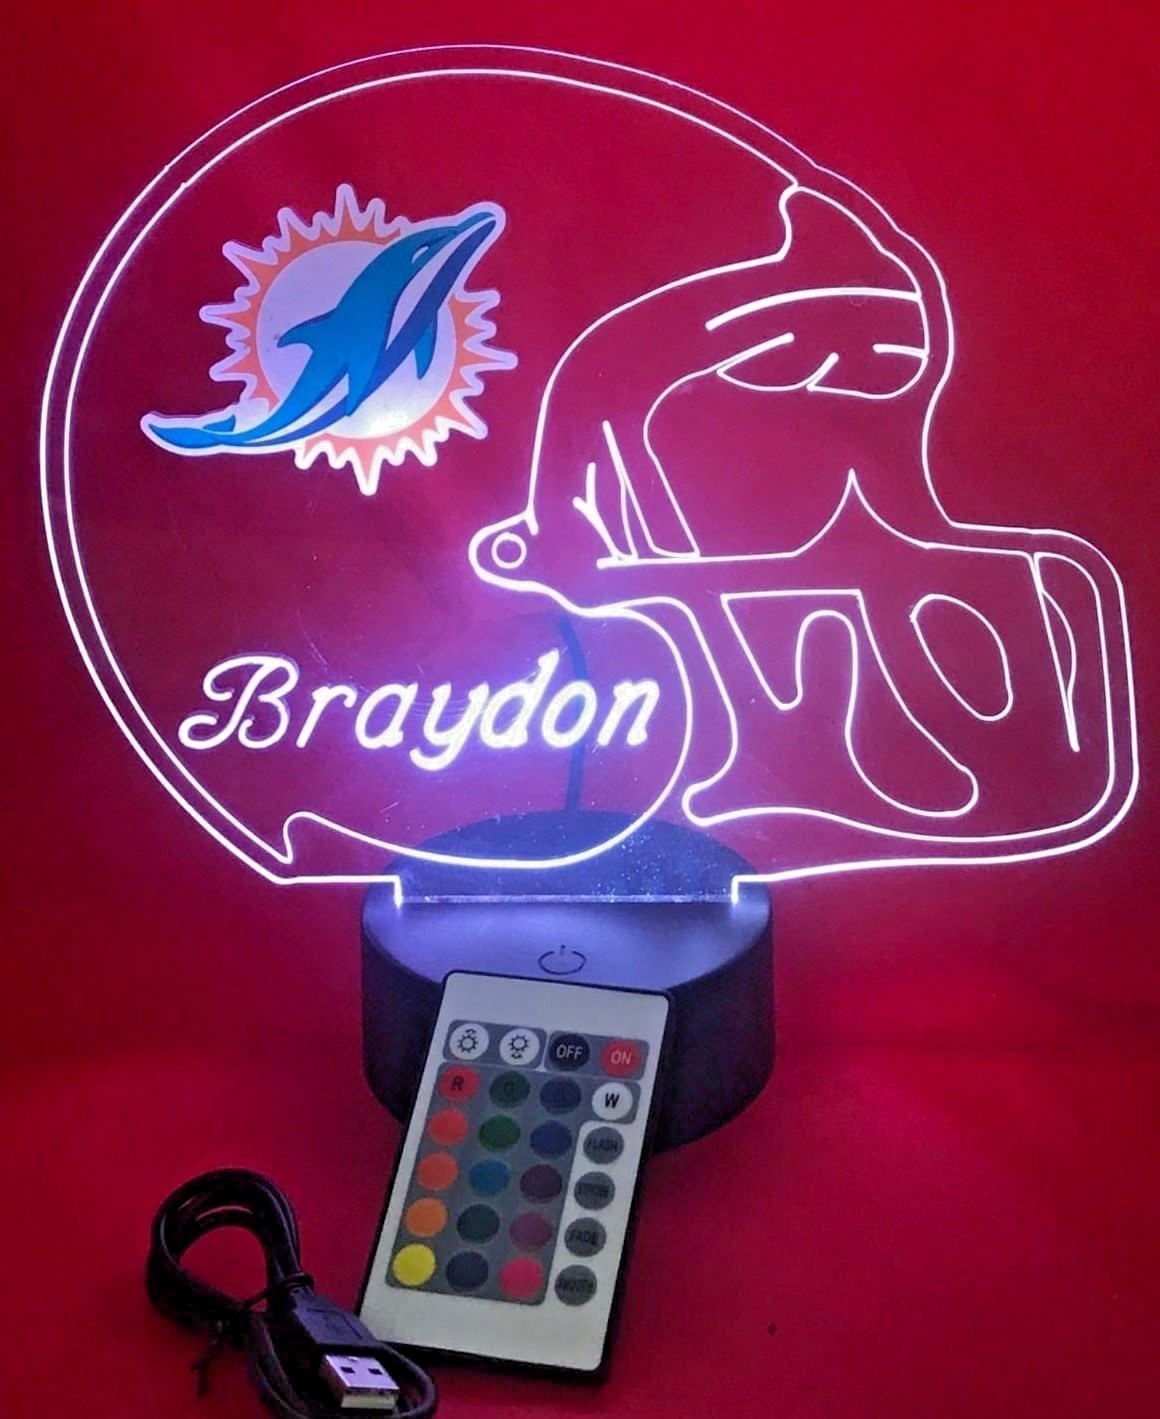 Miami Dolphins NFL Light Up Lamp LED Personalized Free Football Light Up Desk Light Lamp LED Table Lamp, Our Newest Feature – It s WOW, With Remote, 16 Color Options, Dimmer, Free Engraved, Great Gift